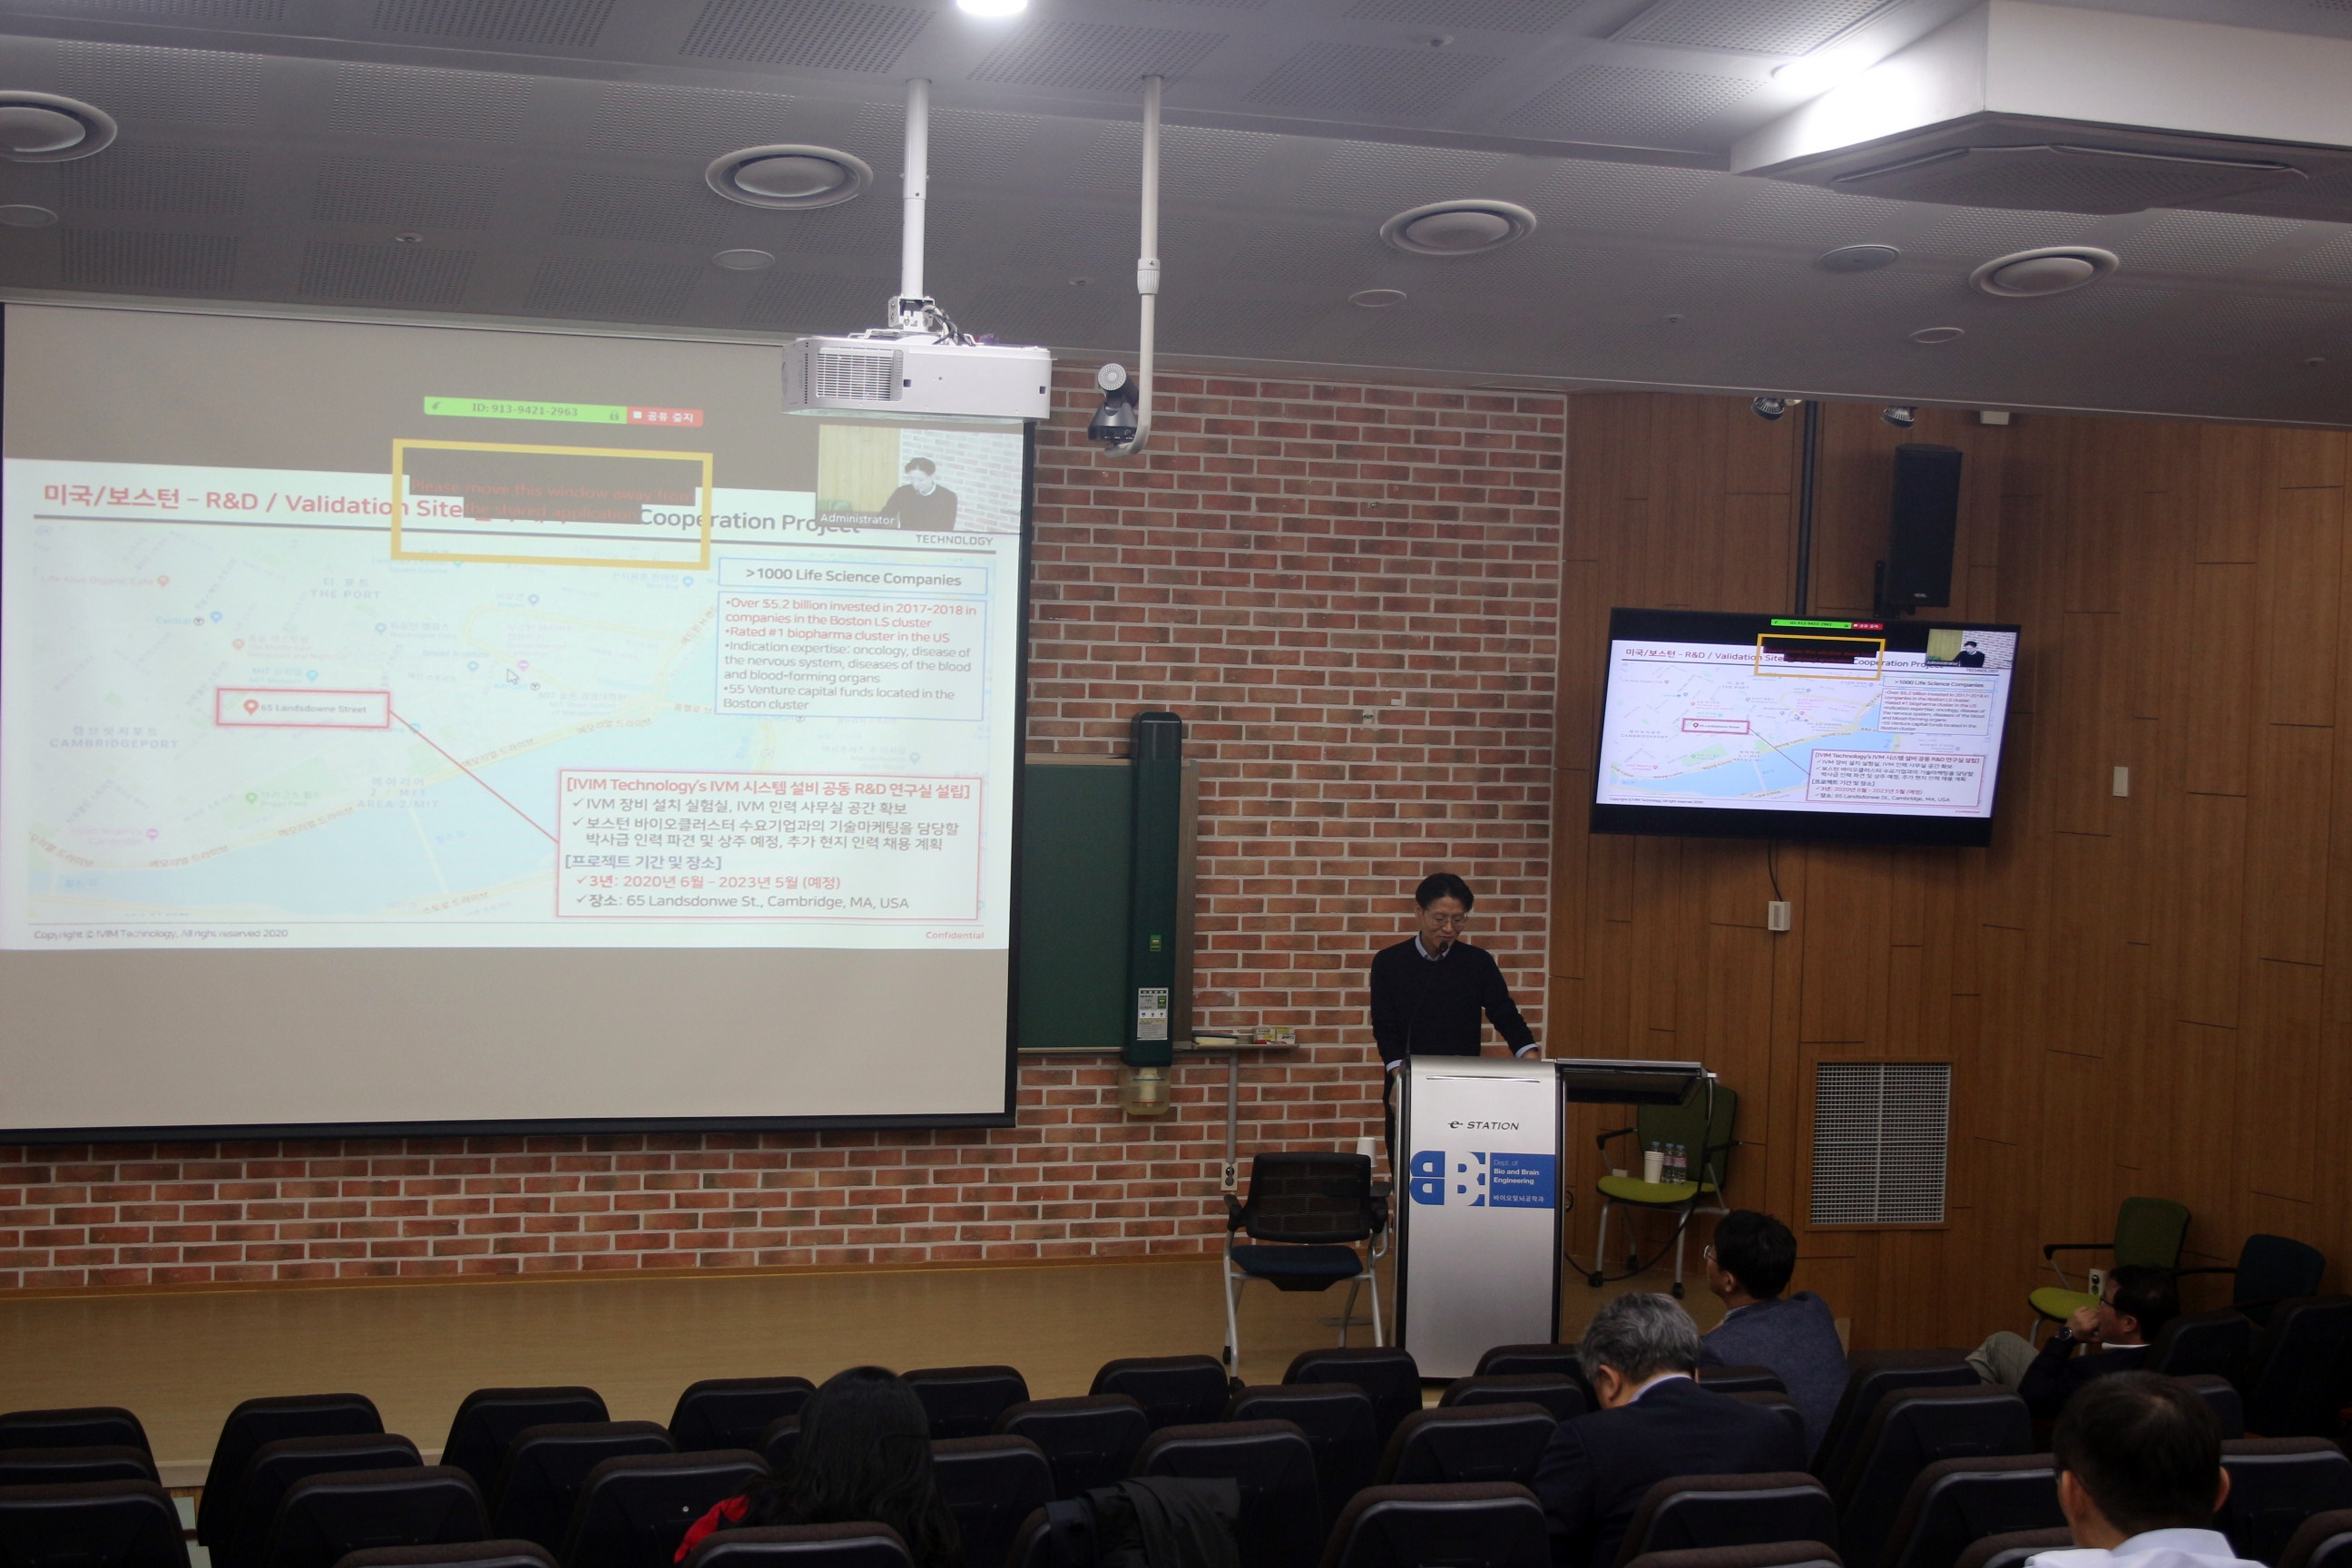 [학과동정] KAIST One Club Investment Relation (IR) 행사 개최.JPG